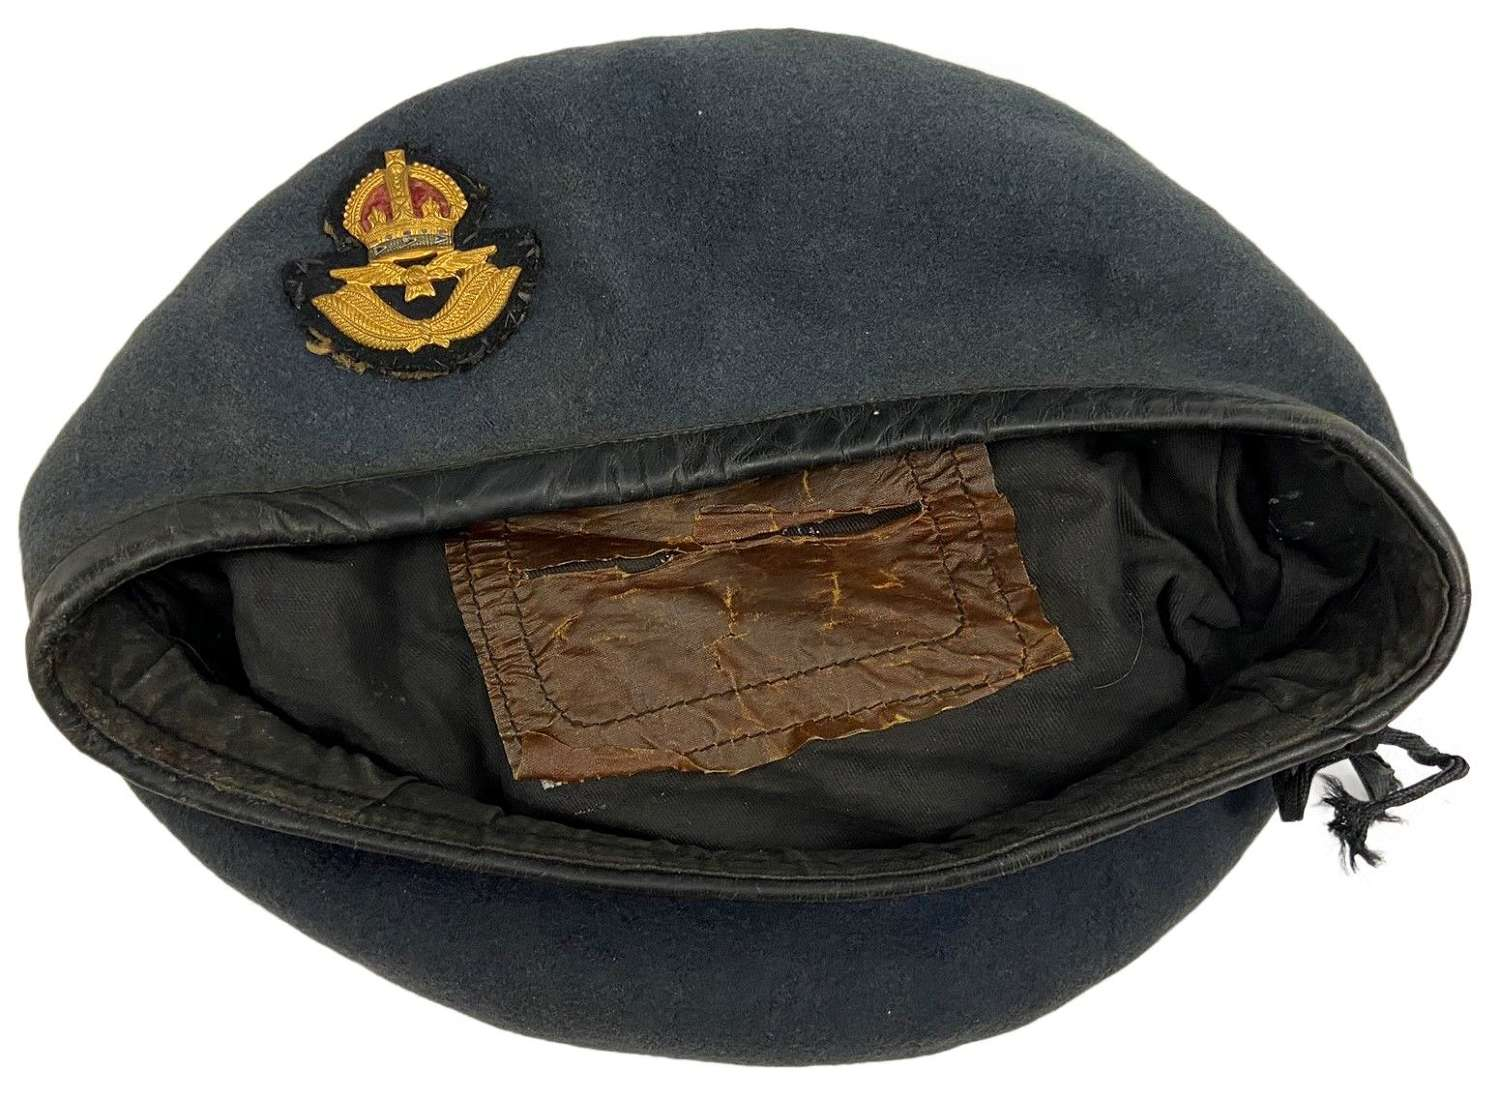 Original 1952 Dated Royal Air Force Officers Beret - Size 7 1/4